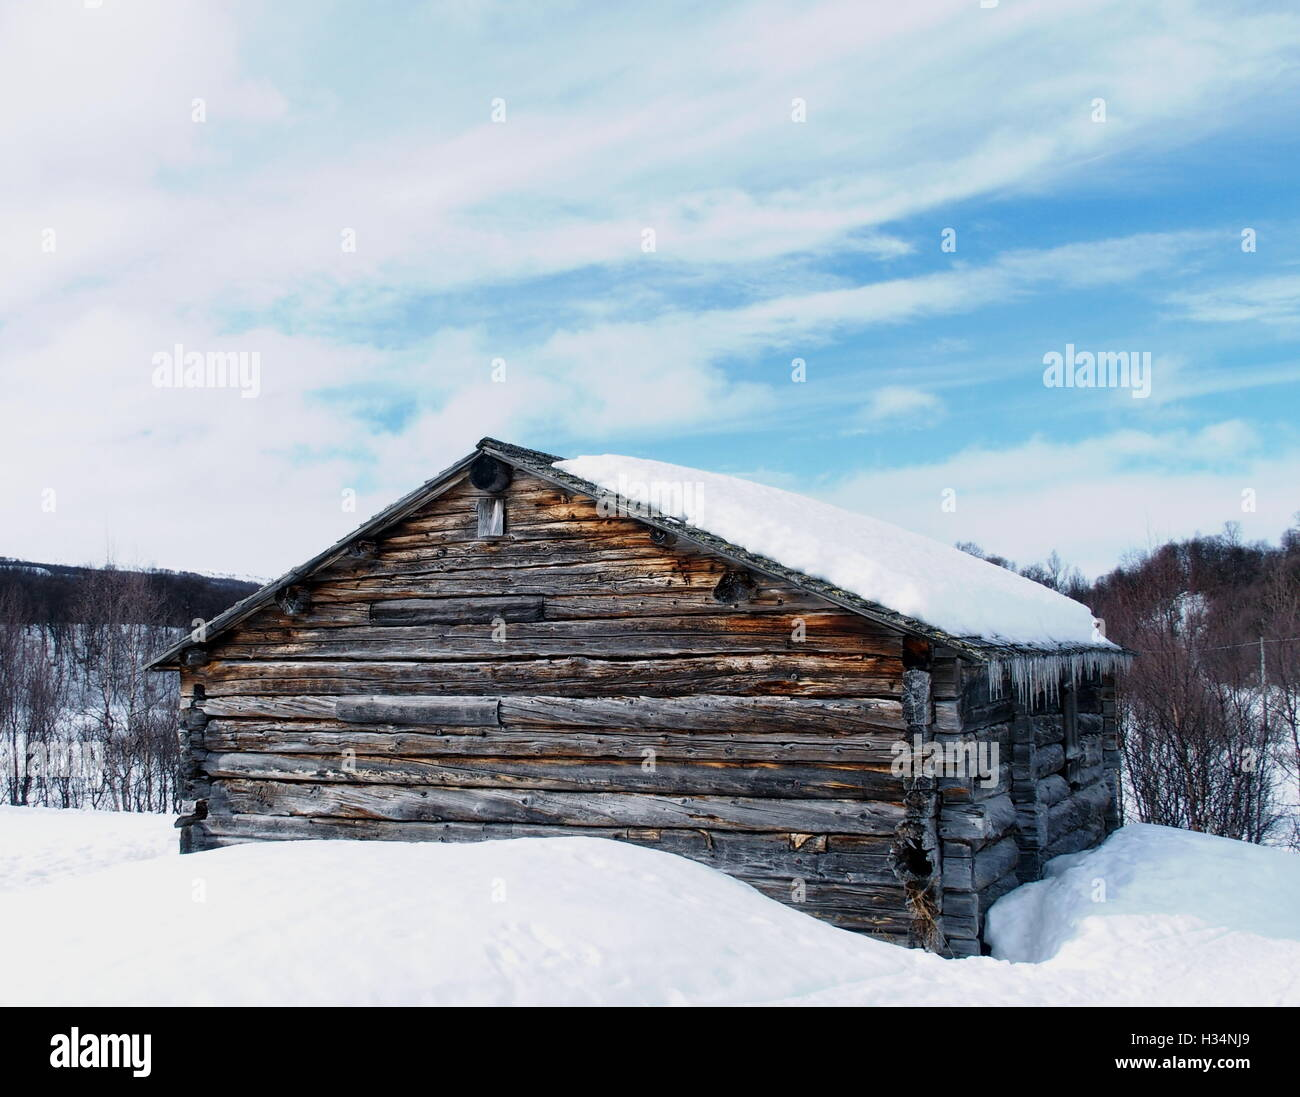 An old hay barn in Swedish mountains - Stock Image